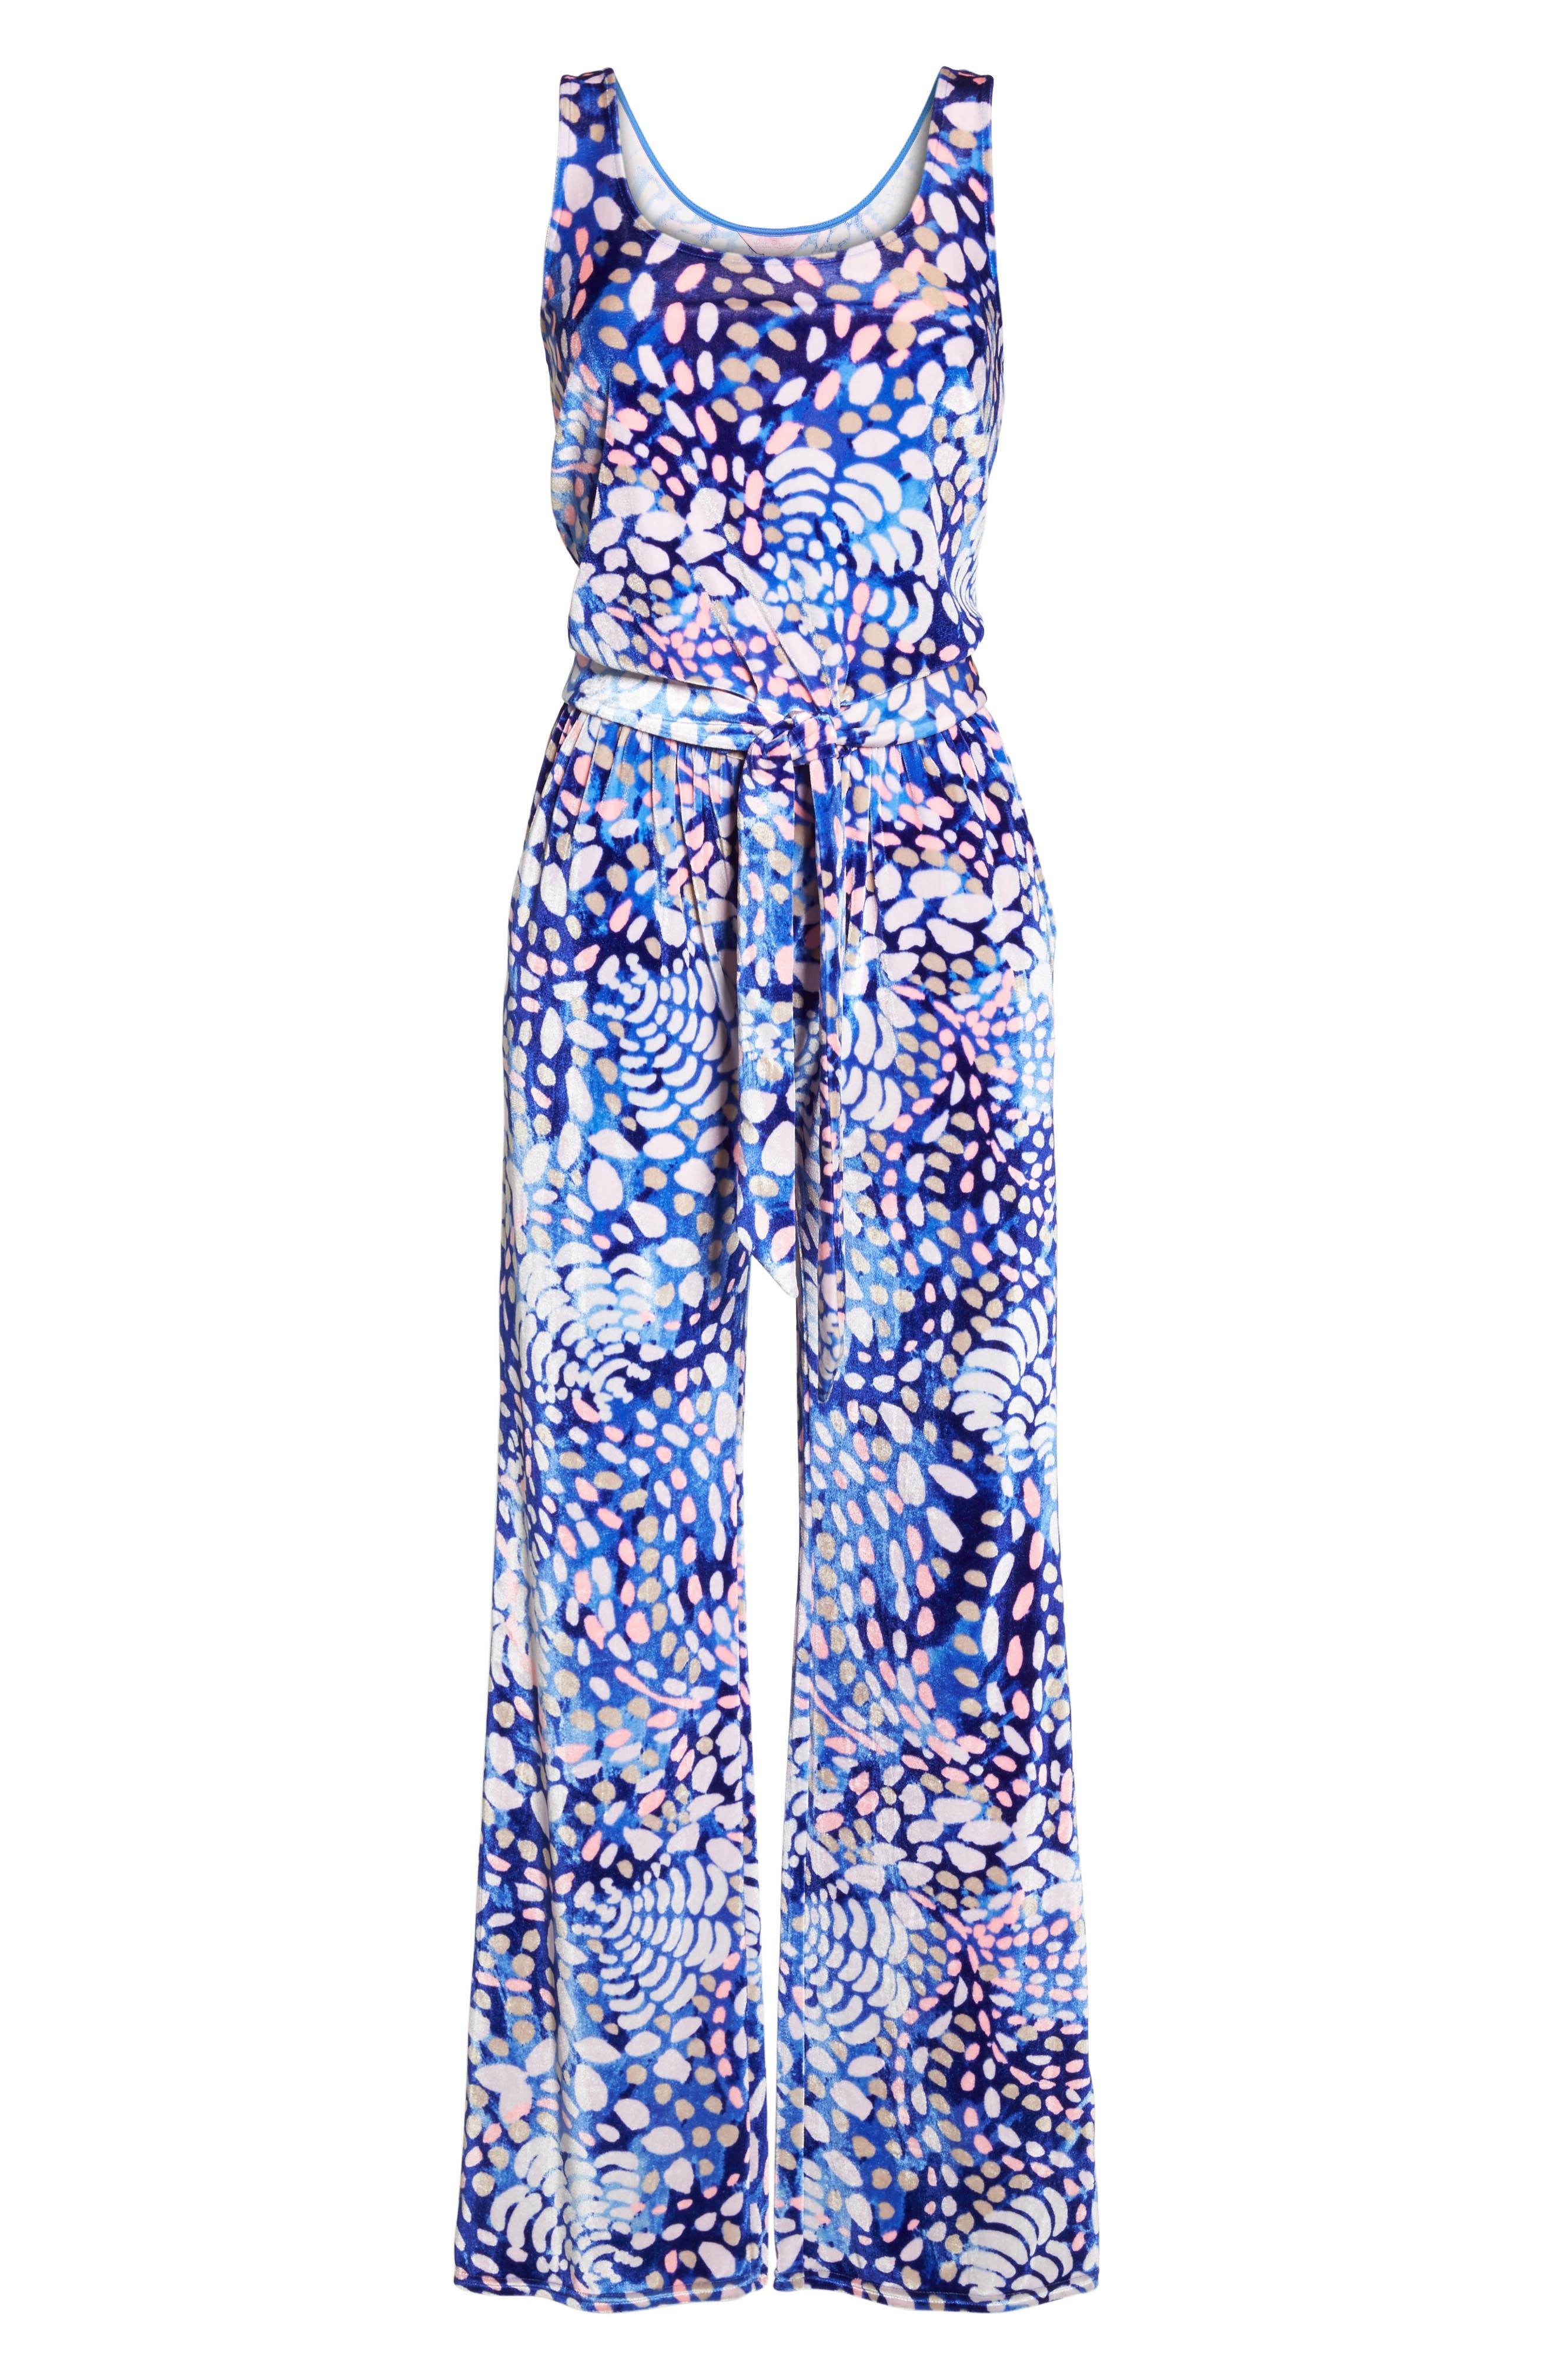 Nena Velour Jumpsuit,                             Alternate thumbnail 6, color,                             Beckon Blue Sparkling Grotto